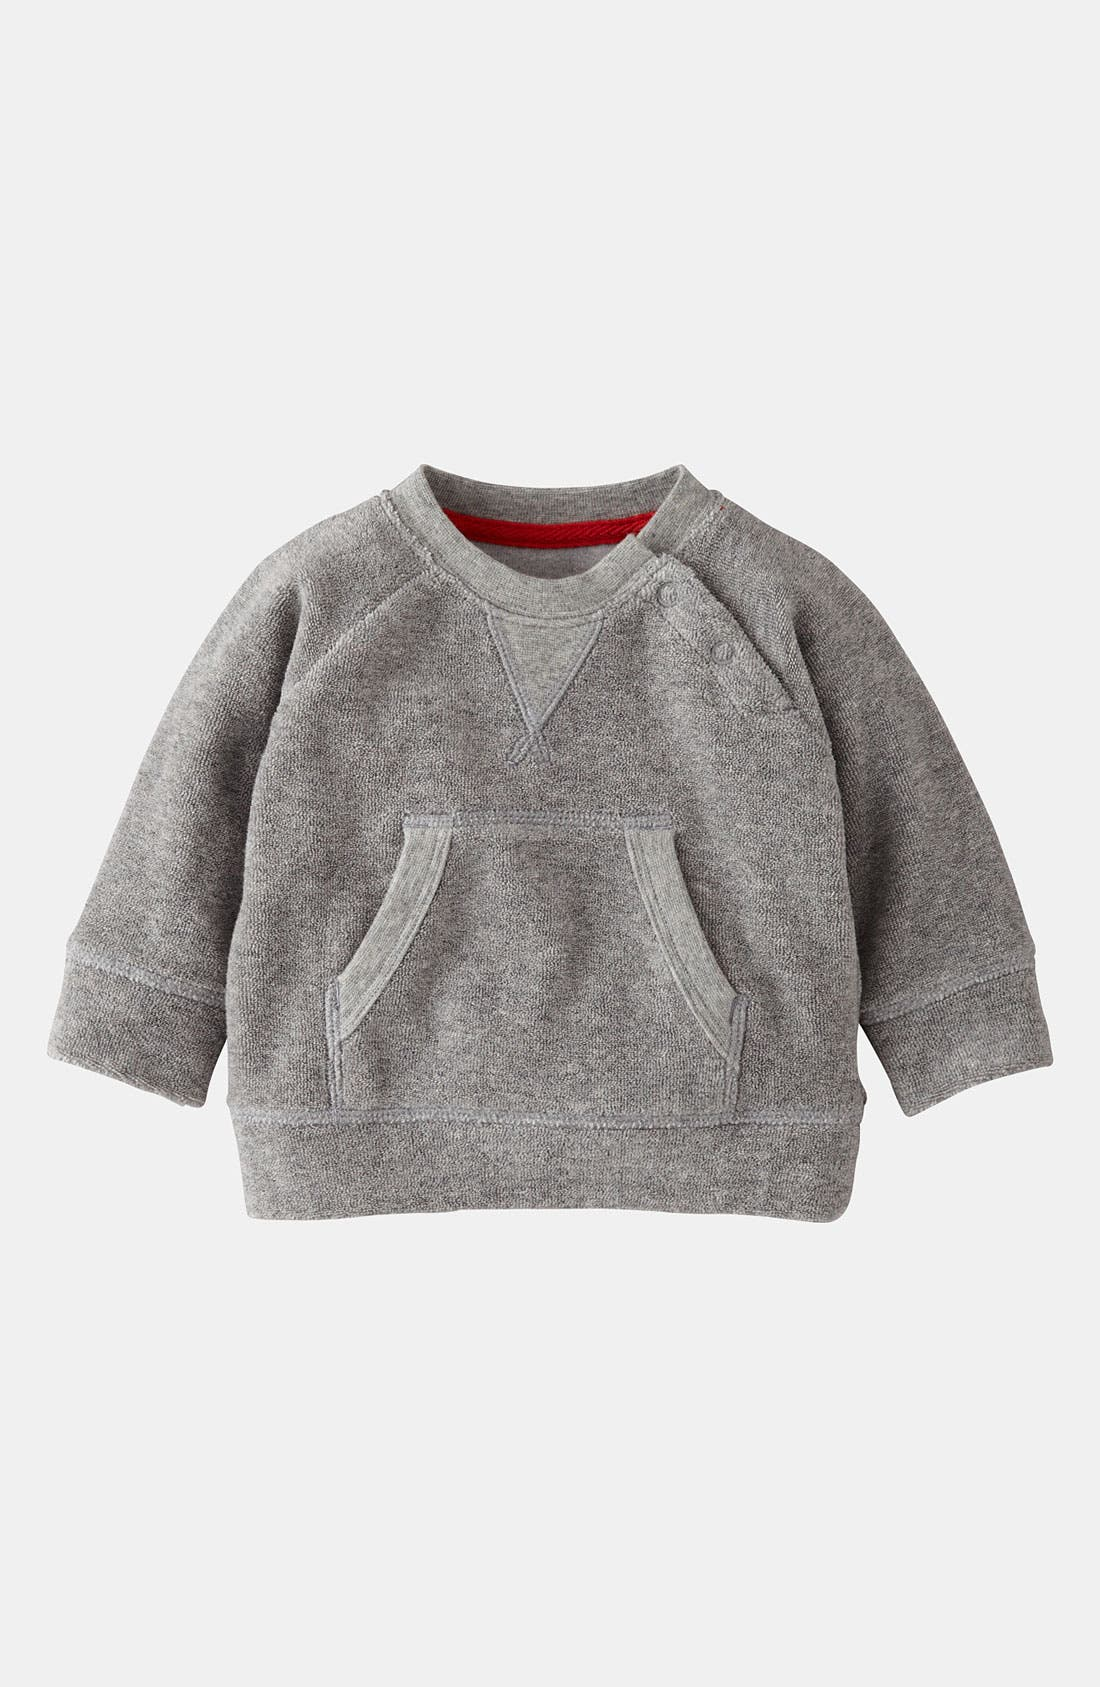 Alternate Image 1 Selected - Mini Boden 'Toweling' Sweater (Baby)